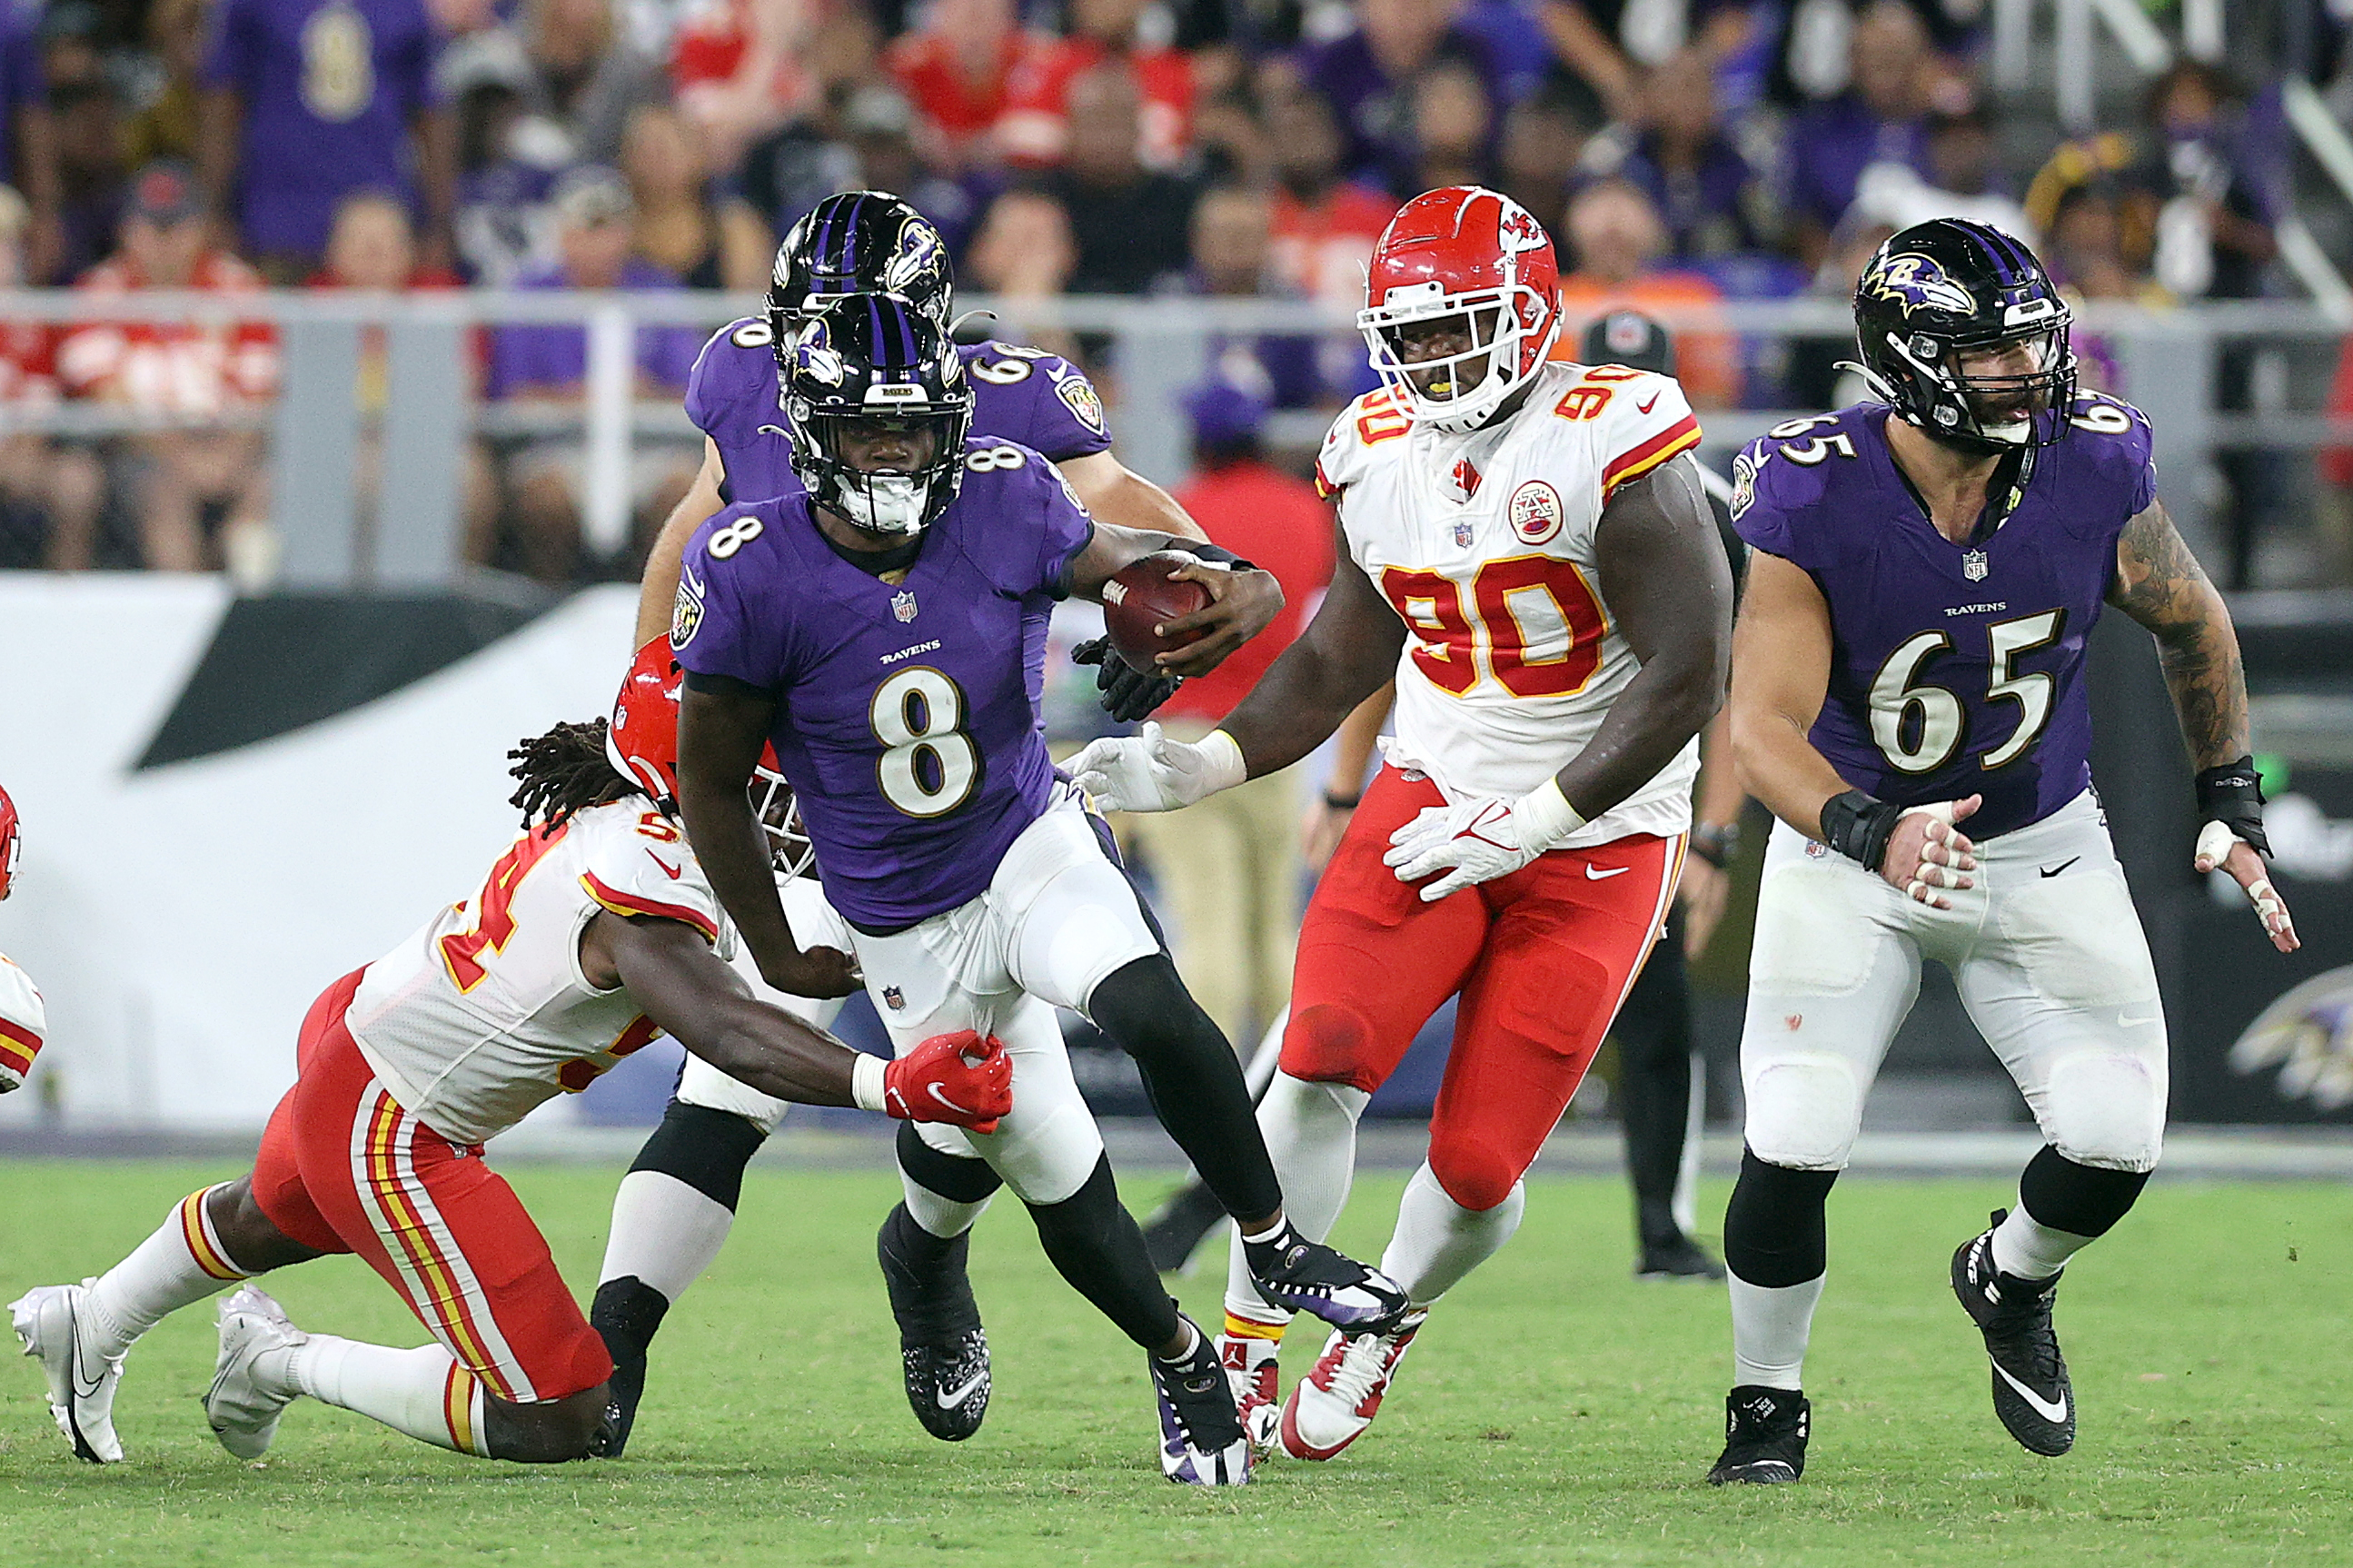 Quarterback Lamar Jackson #8 of the Baltimore Ravens is tackled by linebacker Nick Bolton #54 of the Kansas City Chiefs in the second half at M&T Bank Stadium on September 19, 2021 in Baltimore, Maryland.